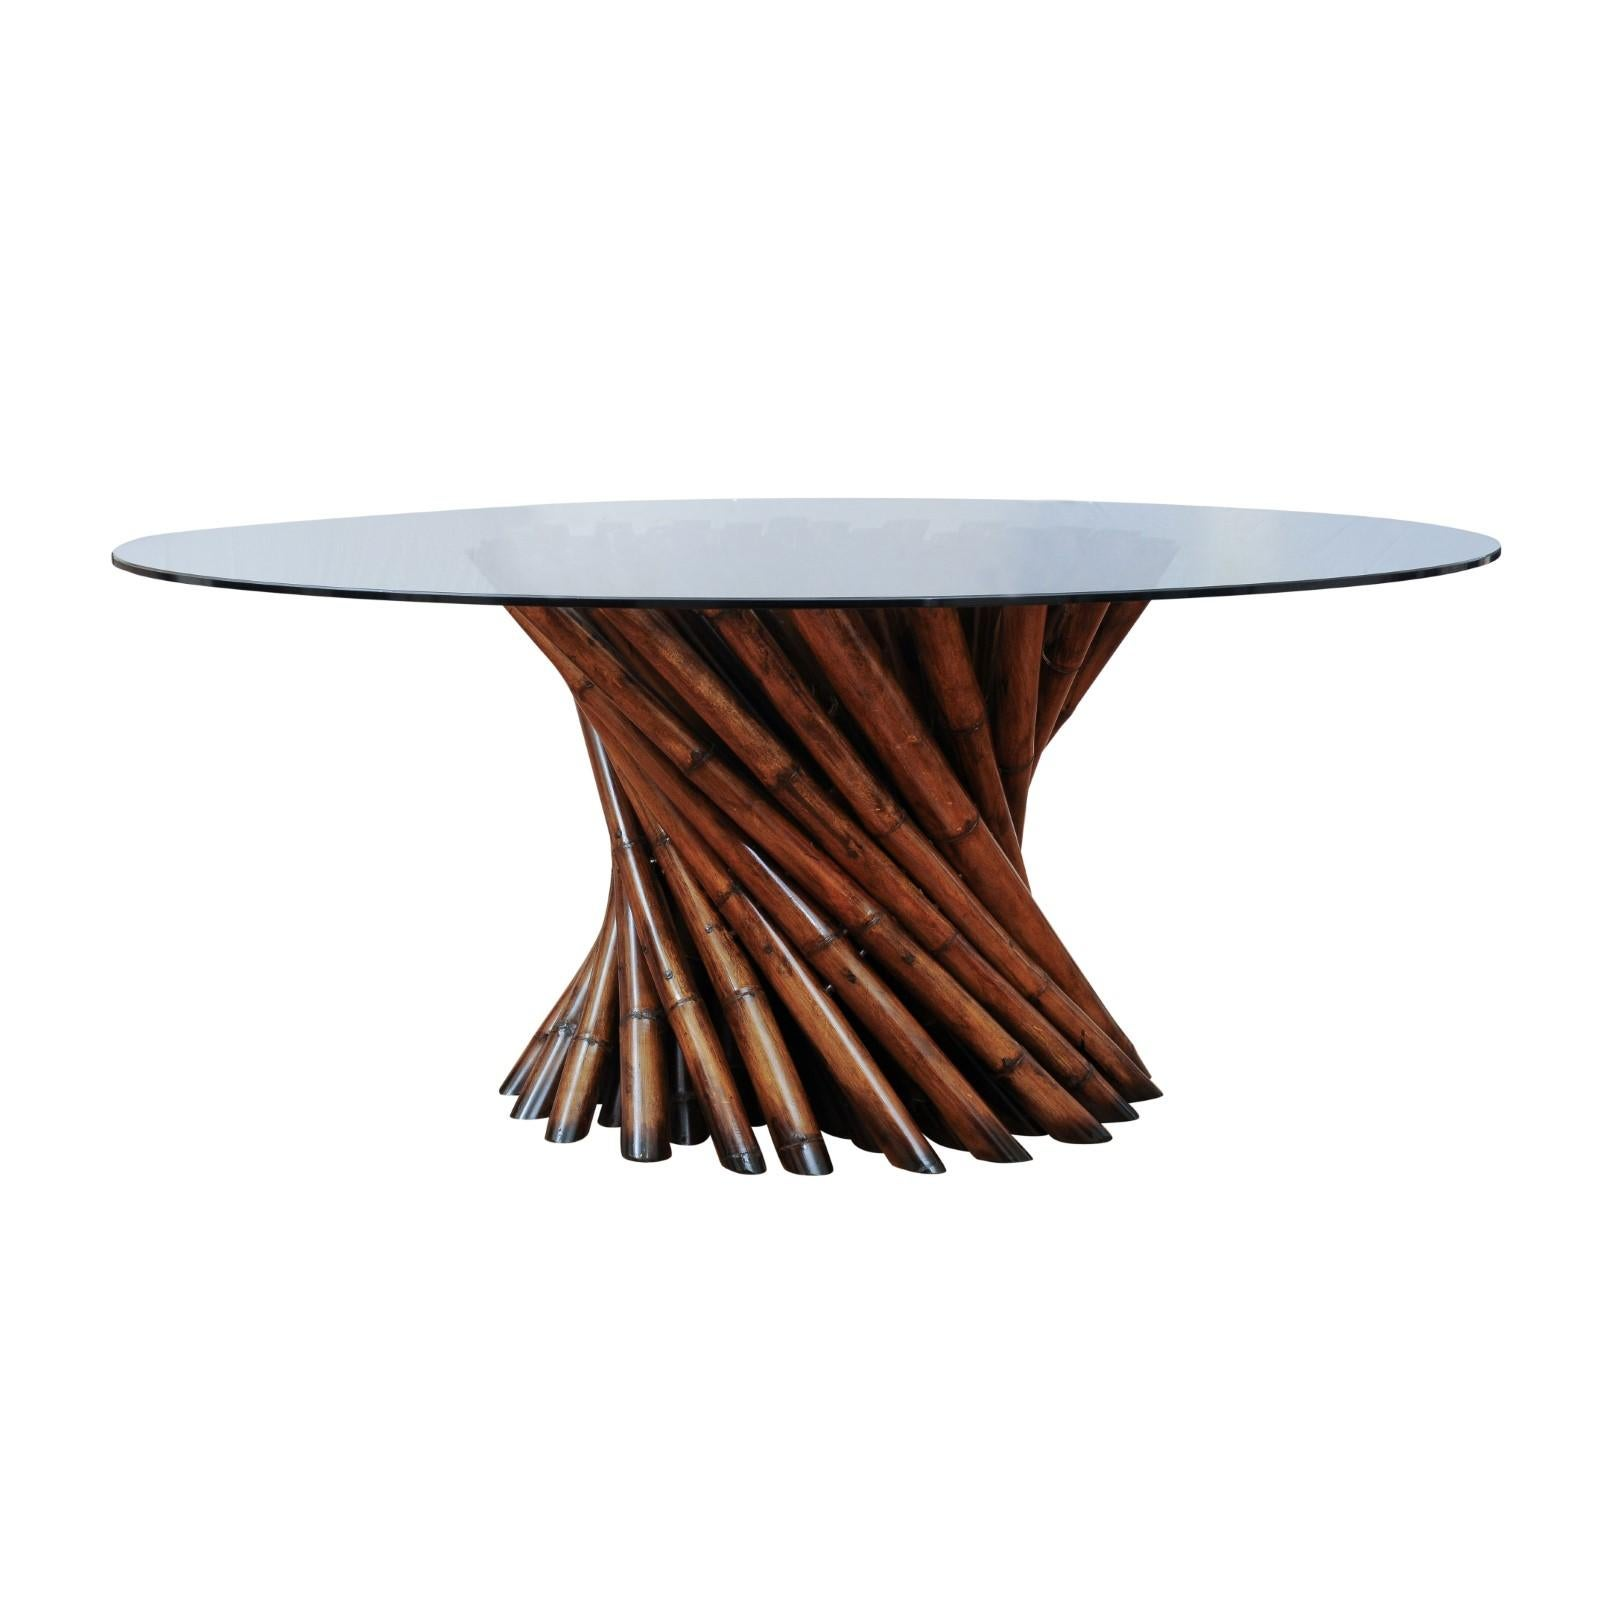 Magnificent Pedestal Bamboo Cluster Center or Dining Table by Budji Layug